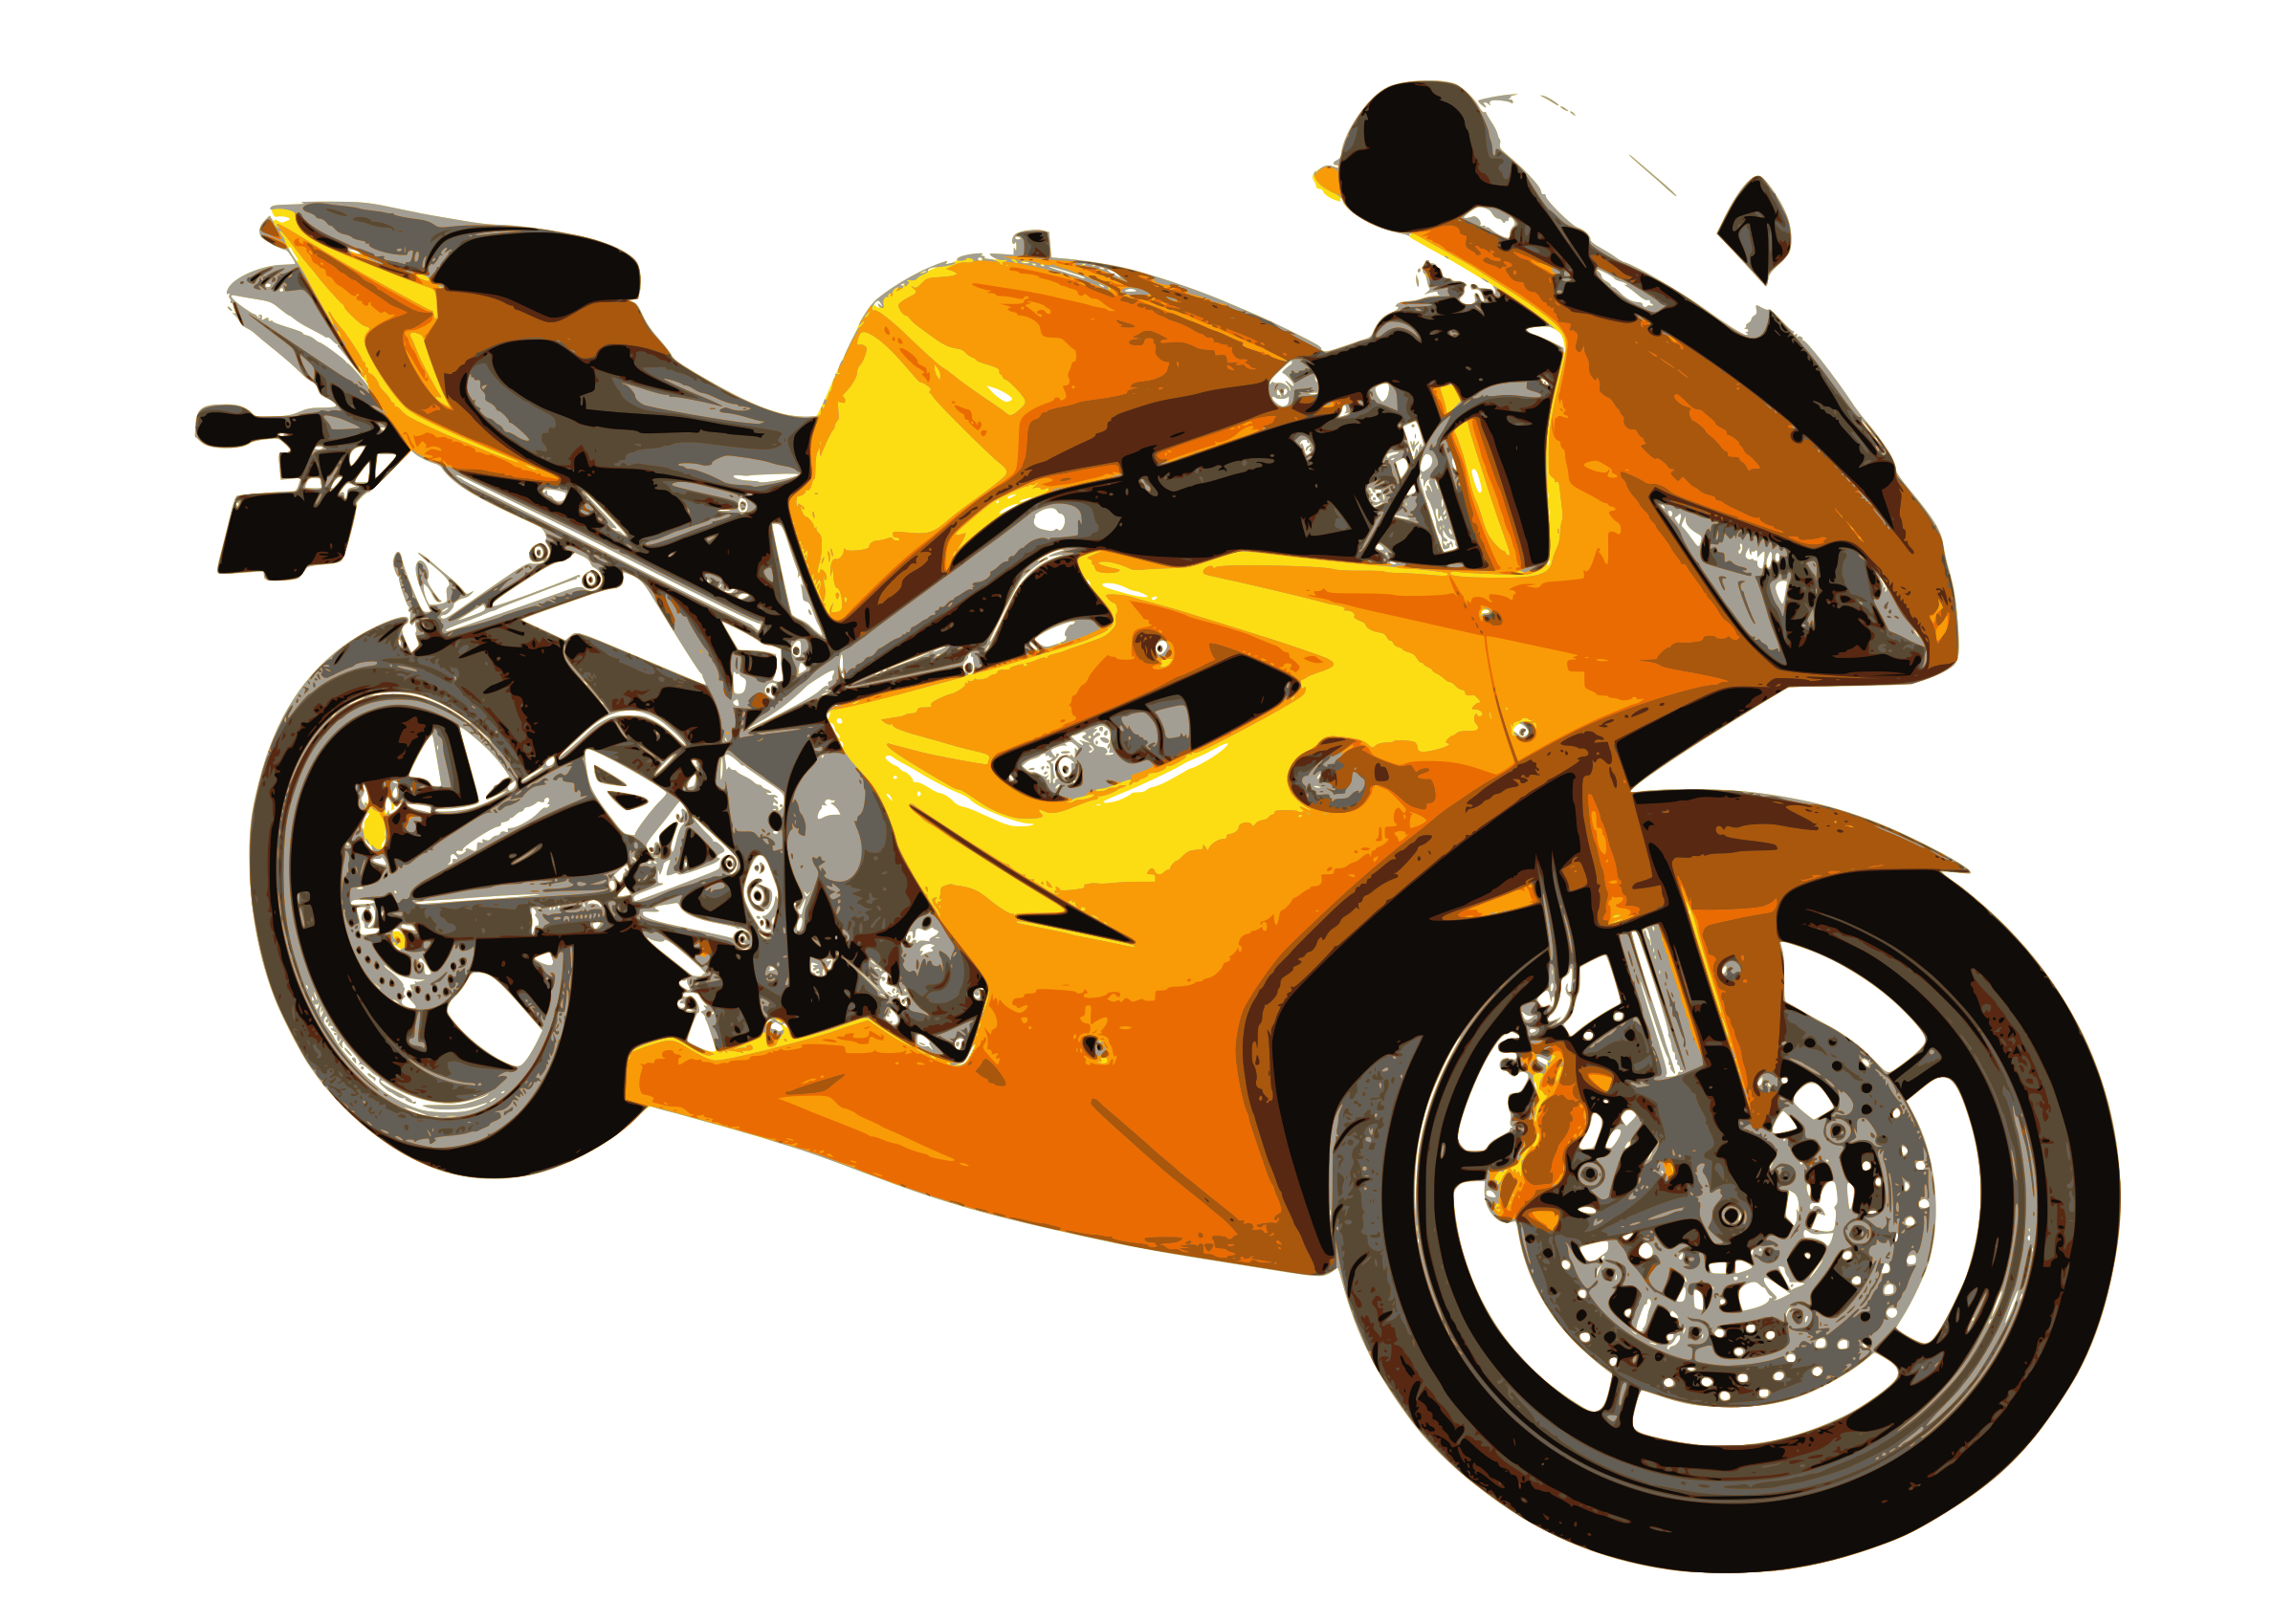 Moto f gs rental. Motorcycle clipart gold wing